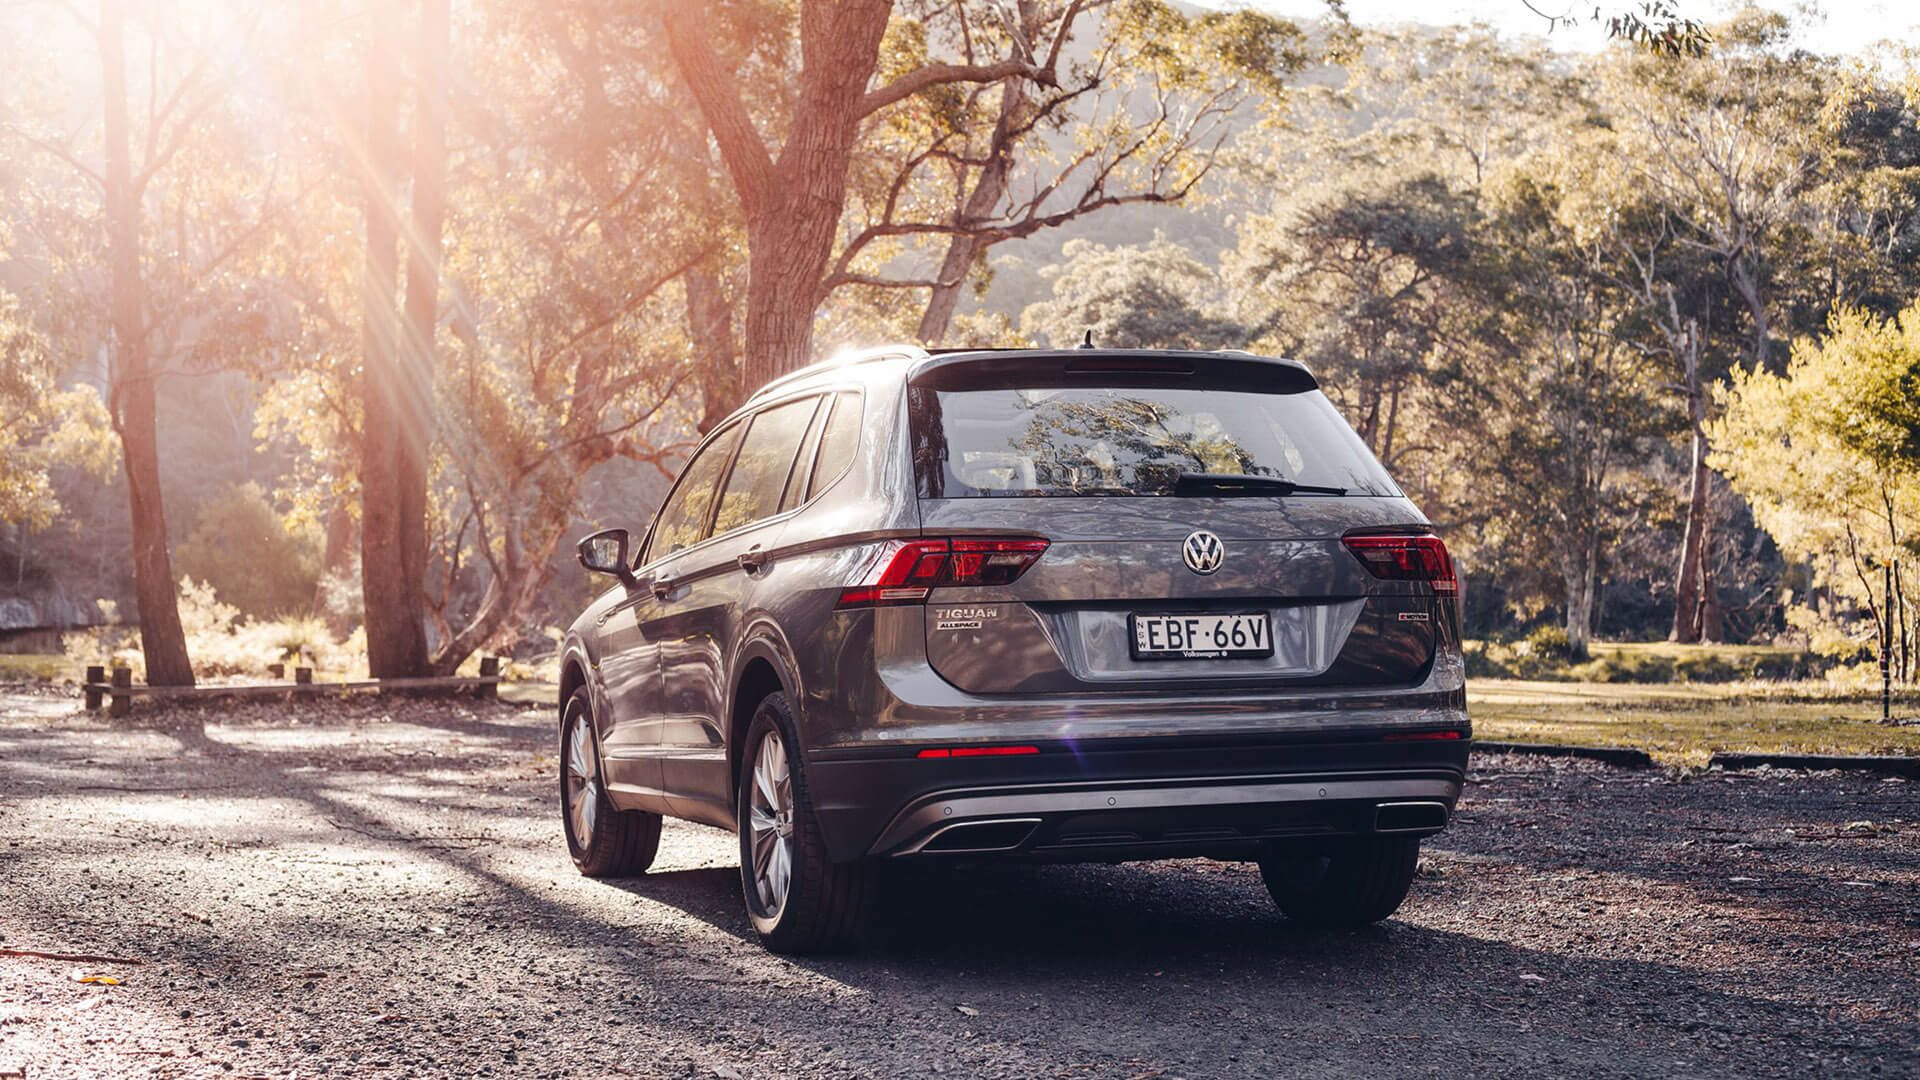 Tiguan Allspace. The SUV that can do it all. Image